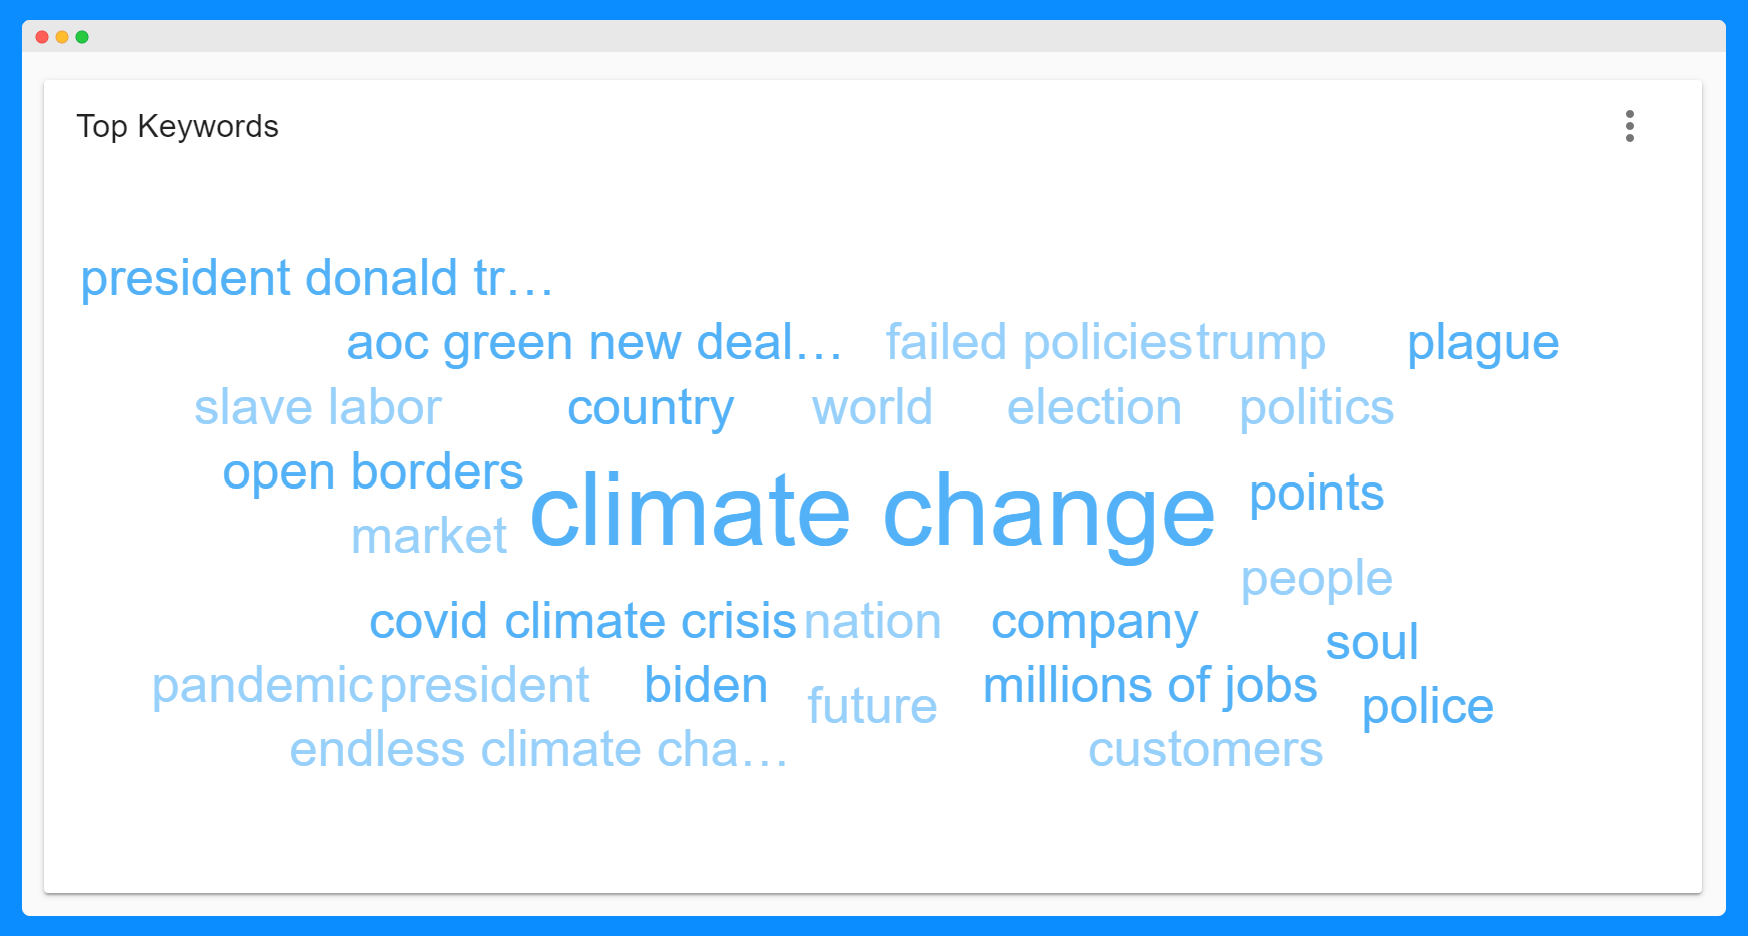 Climate Crisis 2 - Keywords in Meltwater Query